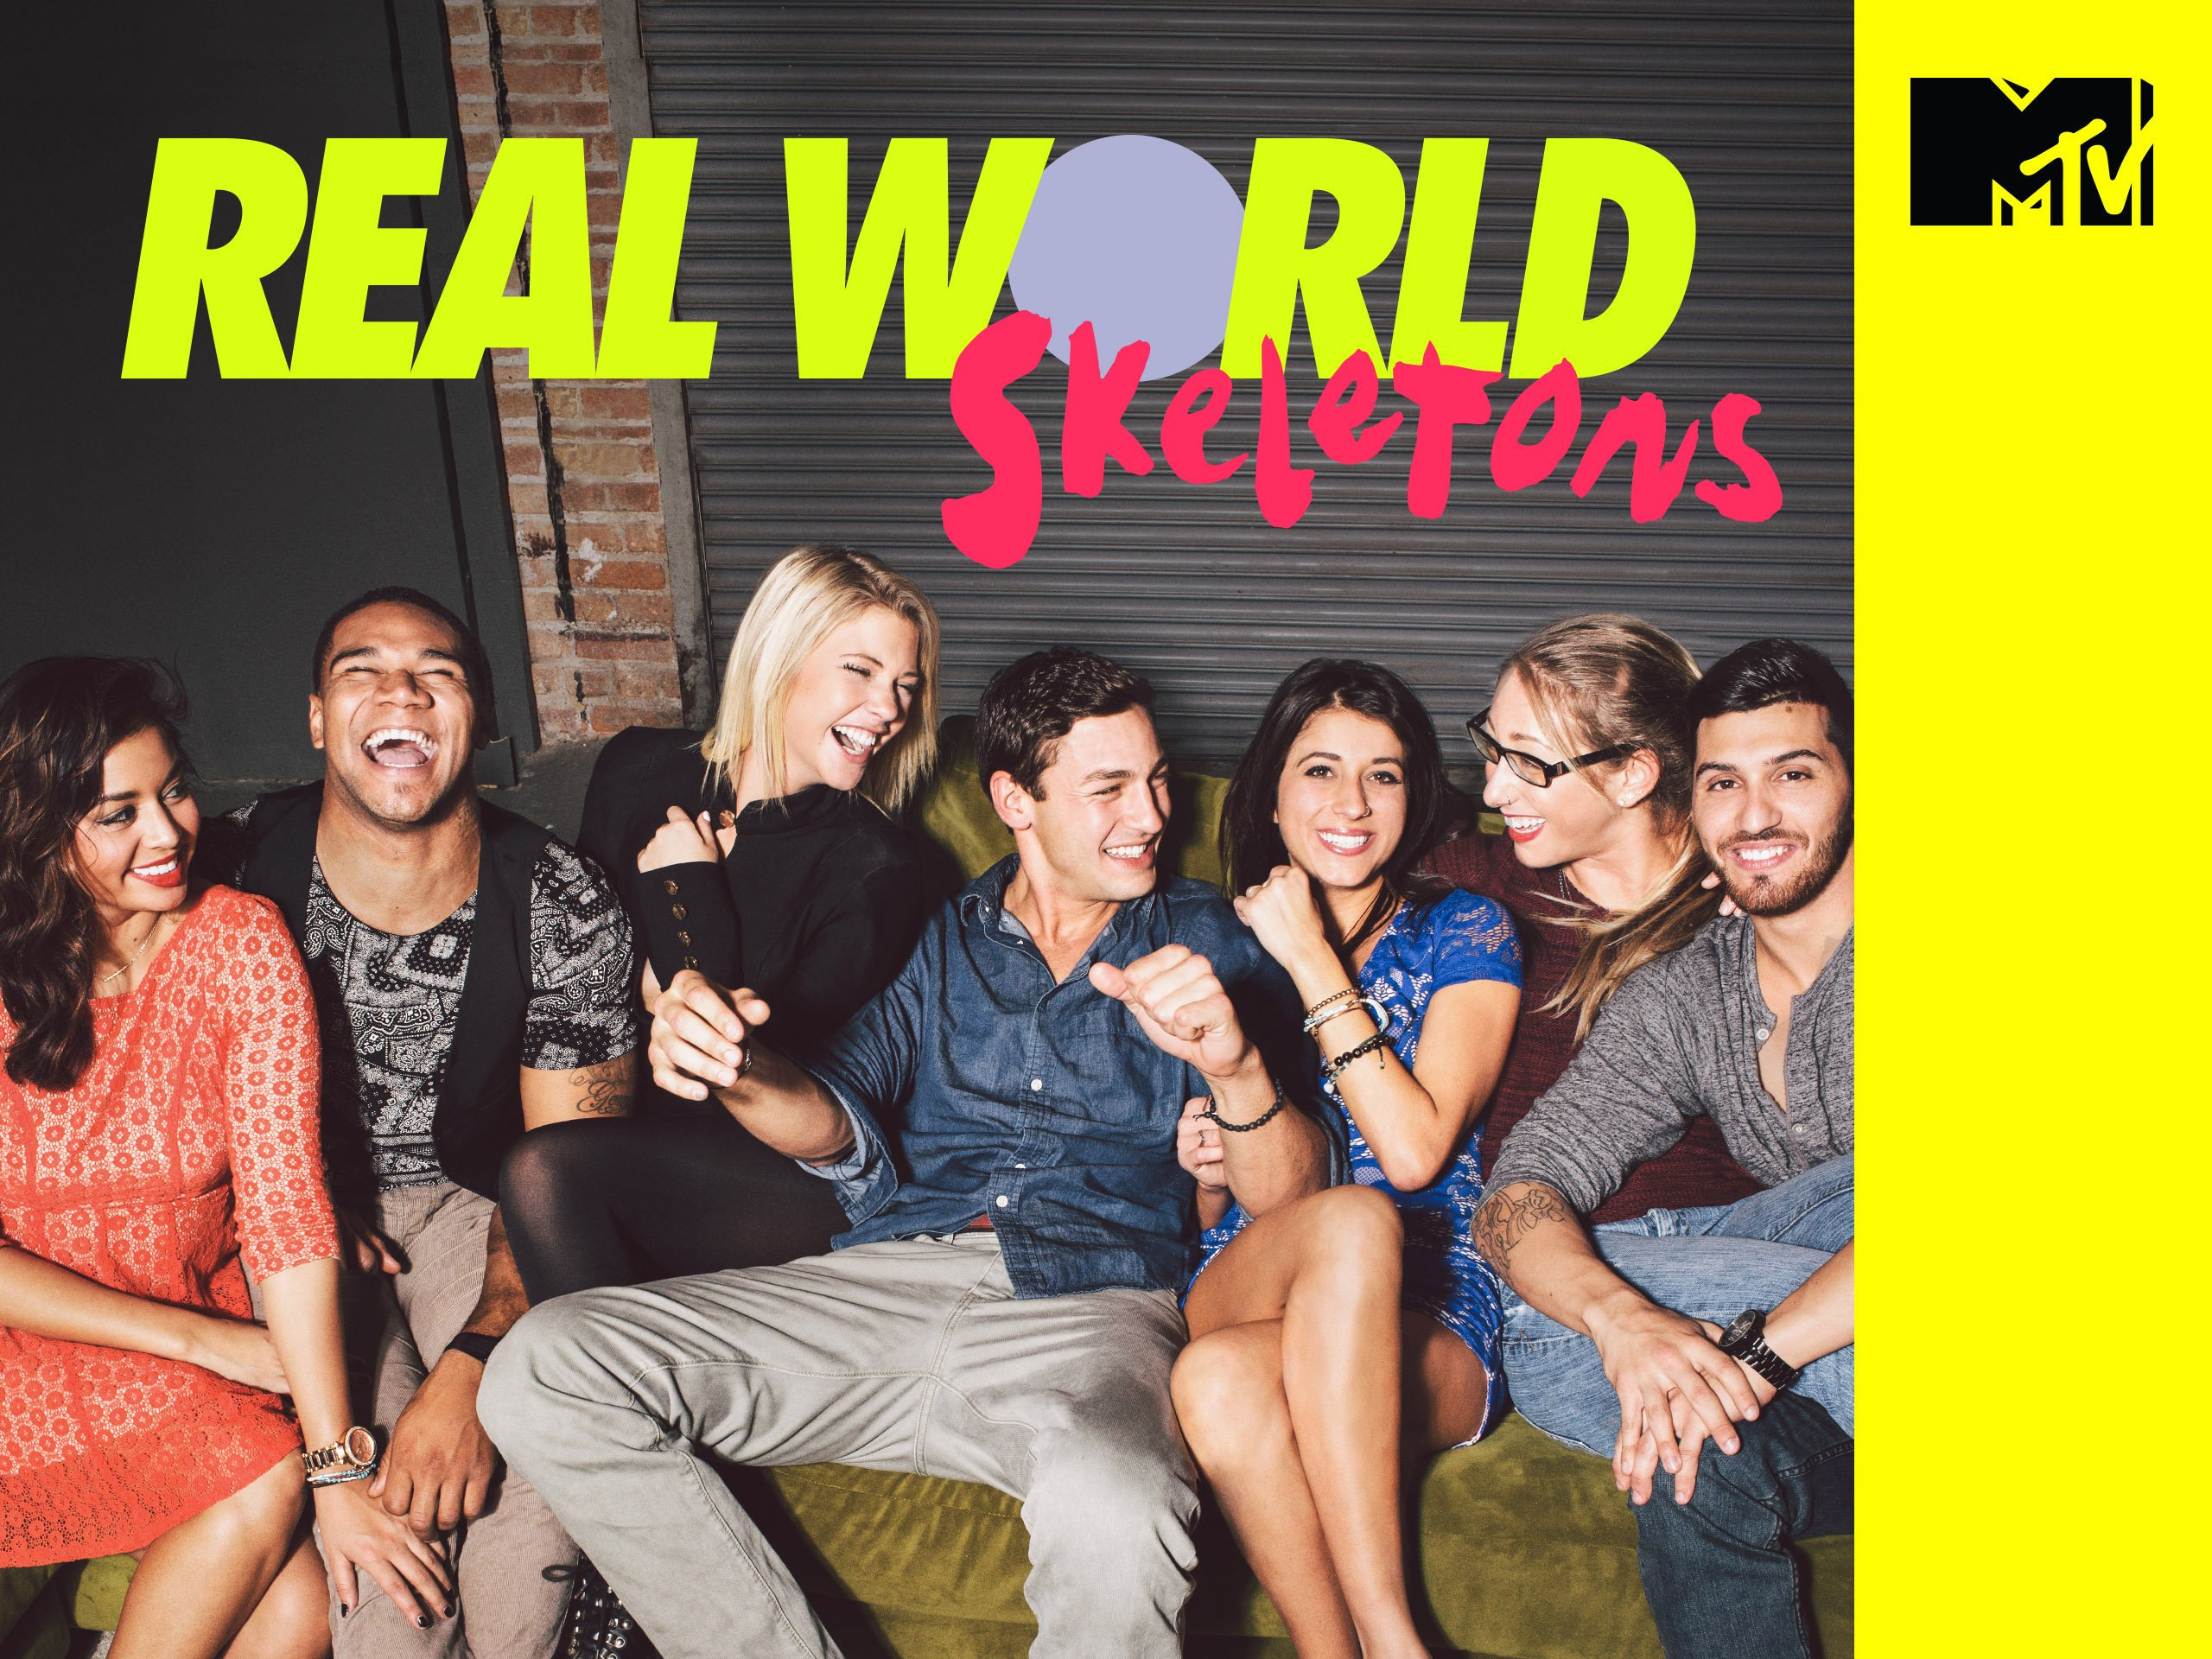 Watch Real World: Skeletons | Prime Video